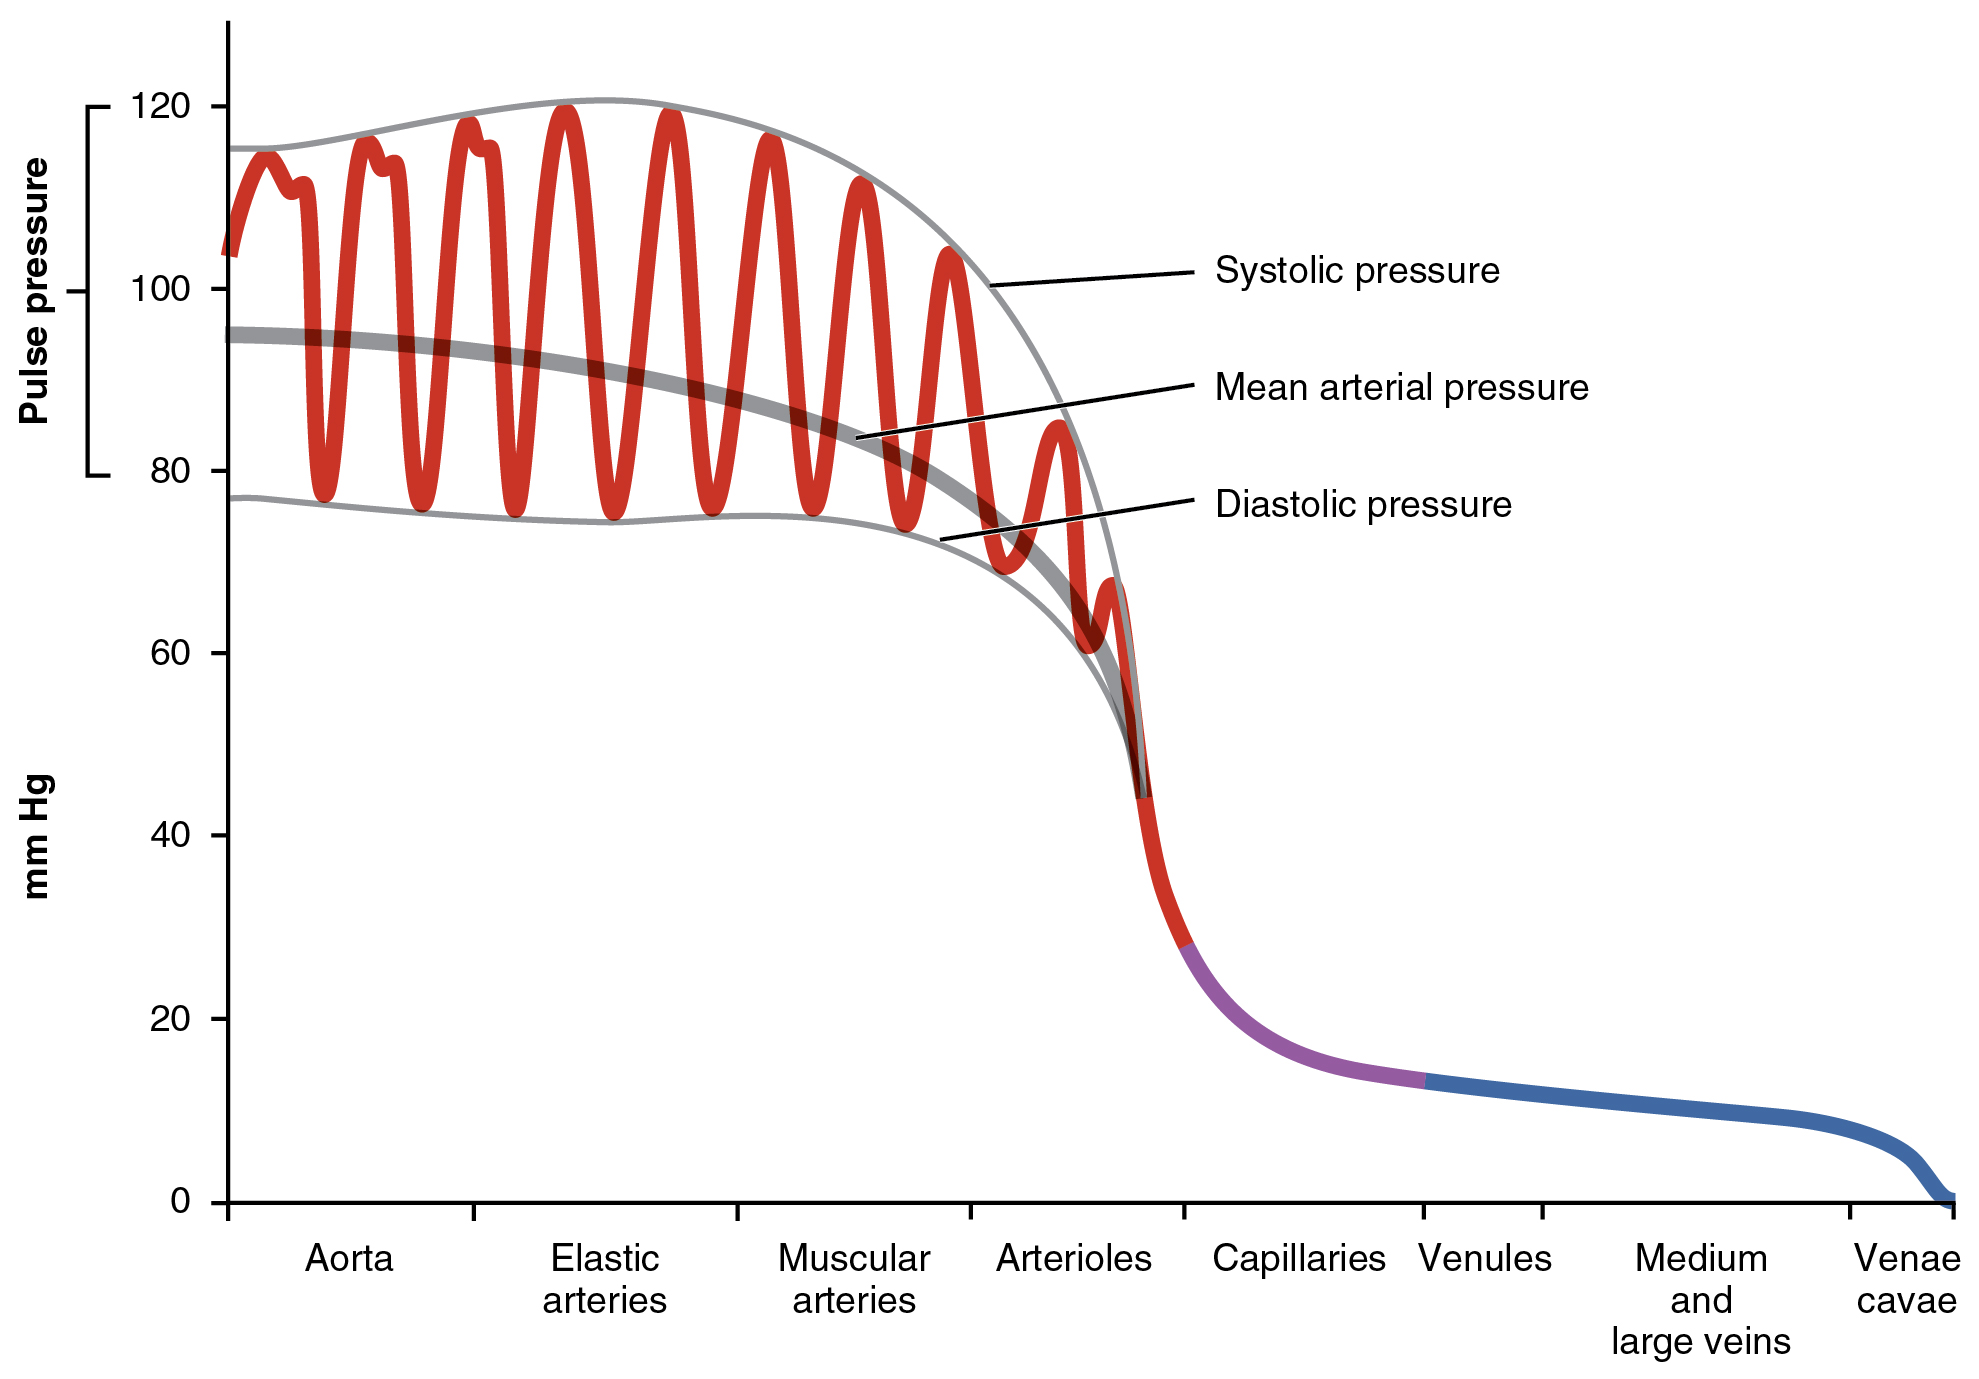 202 Blood Flow Pressure And Resistance Anatomy Physiology Drawing Force Diagrams This Graph Shows The Value Of Pulse In Different Types Vessels